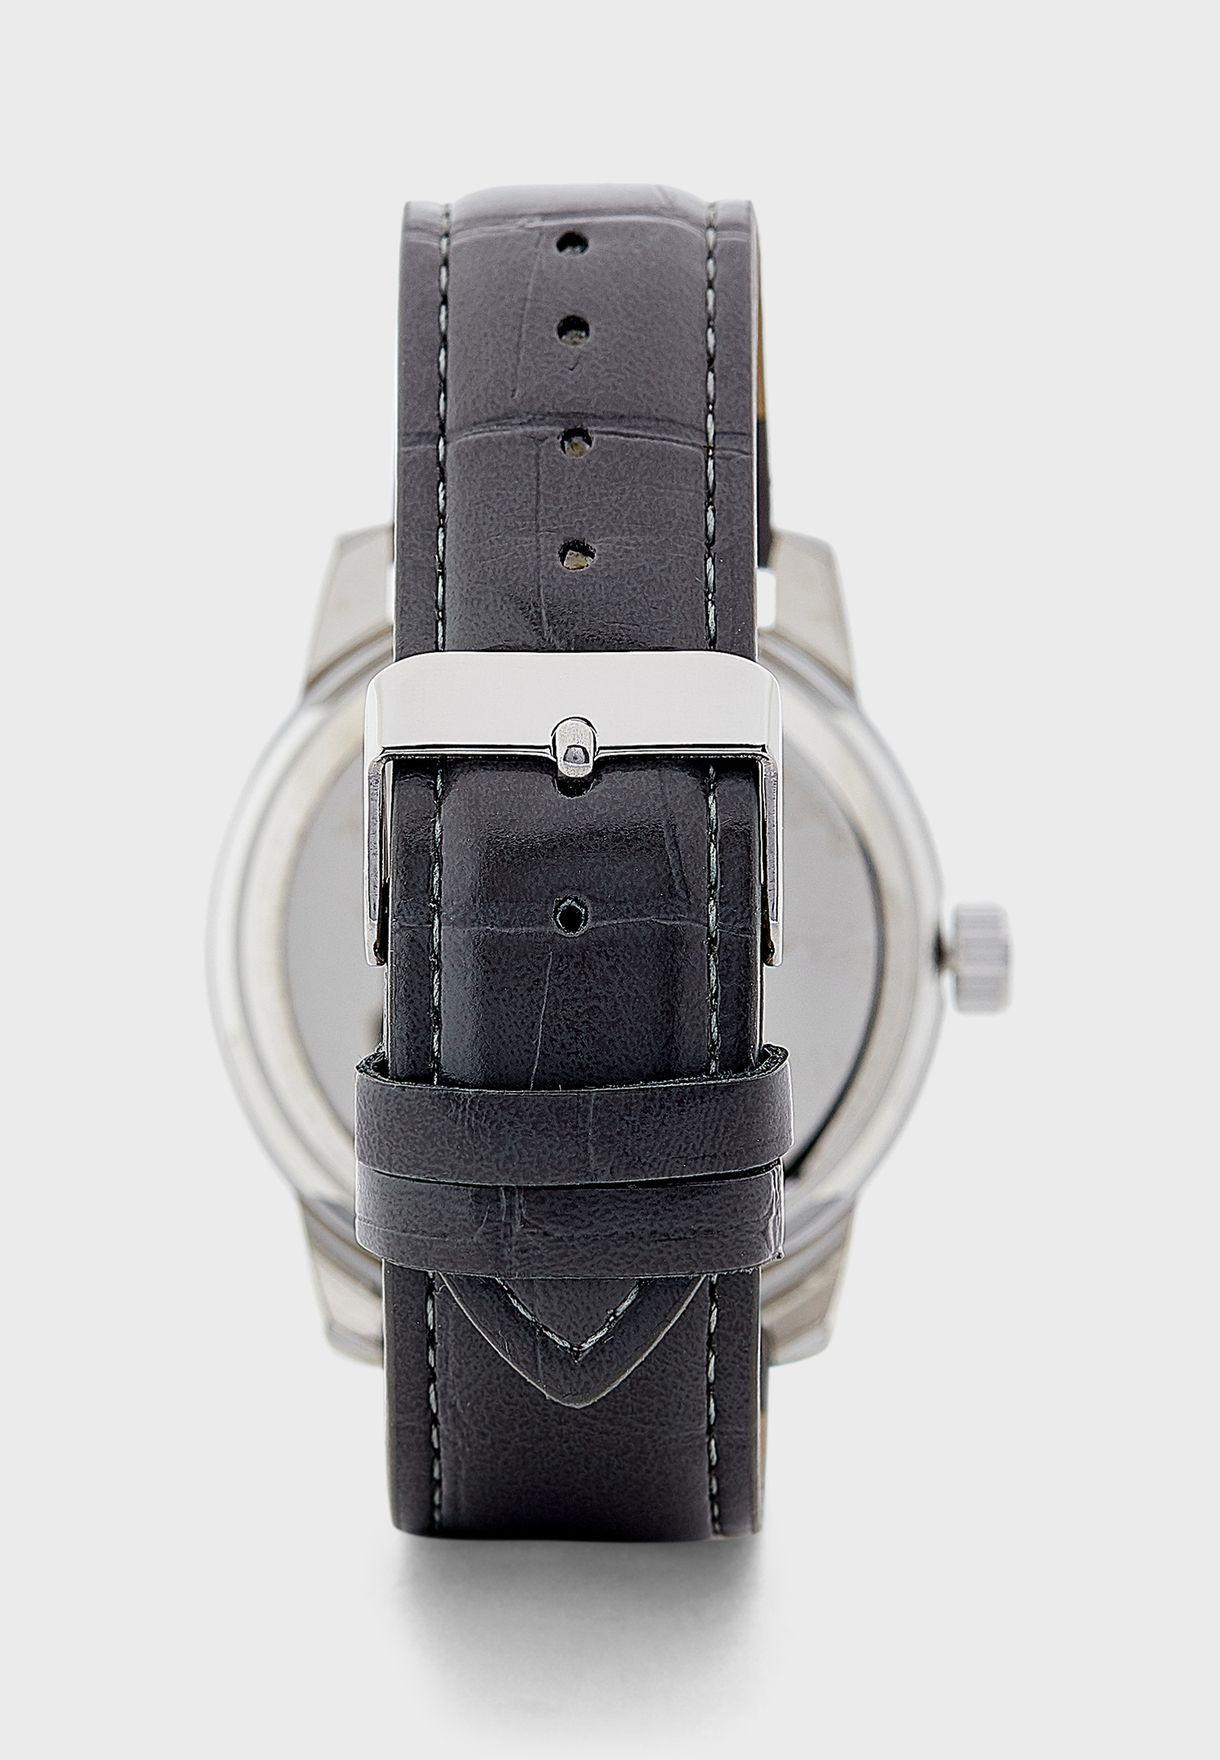 Analogue Watch with Chapter Ring Detail